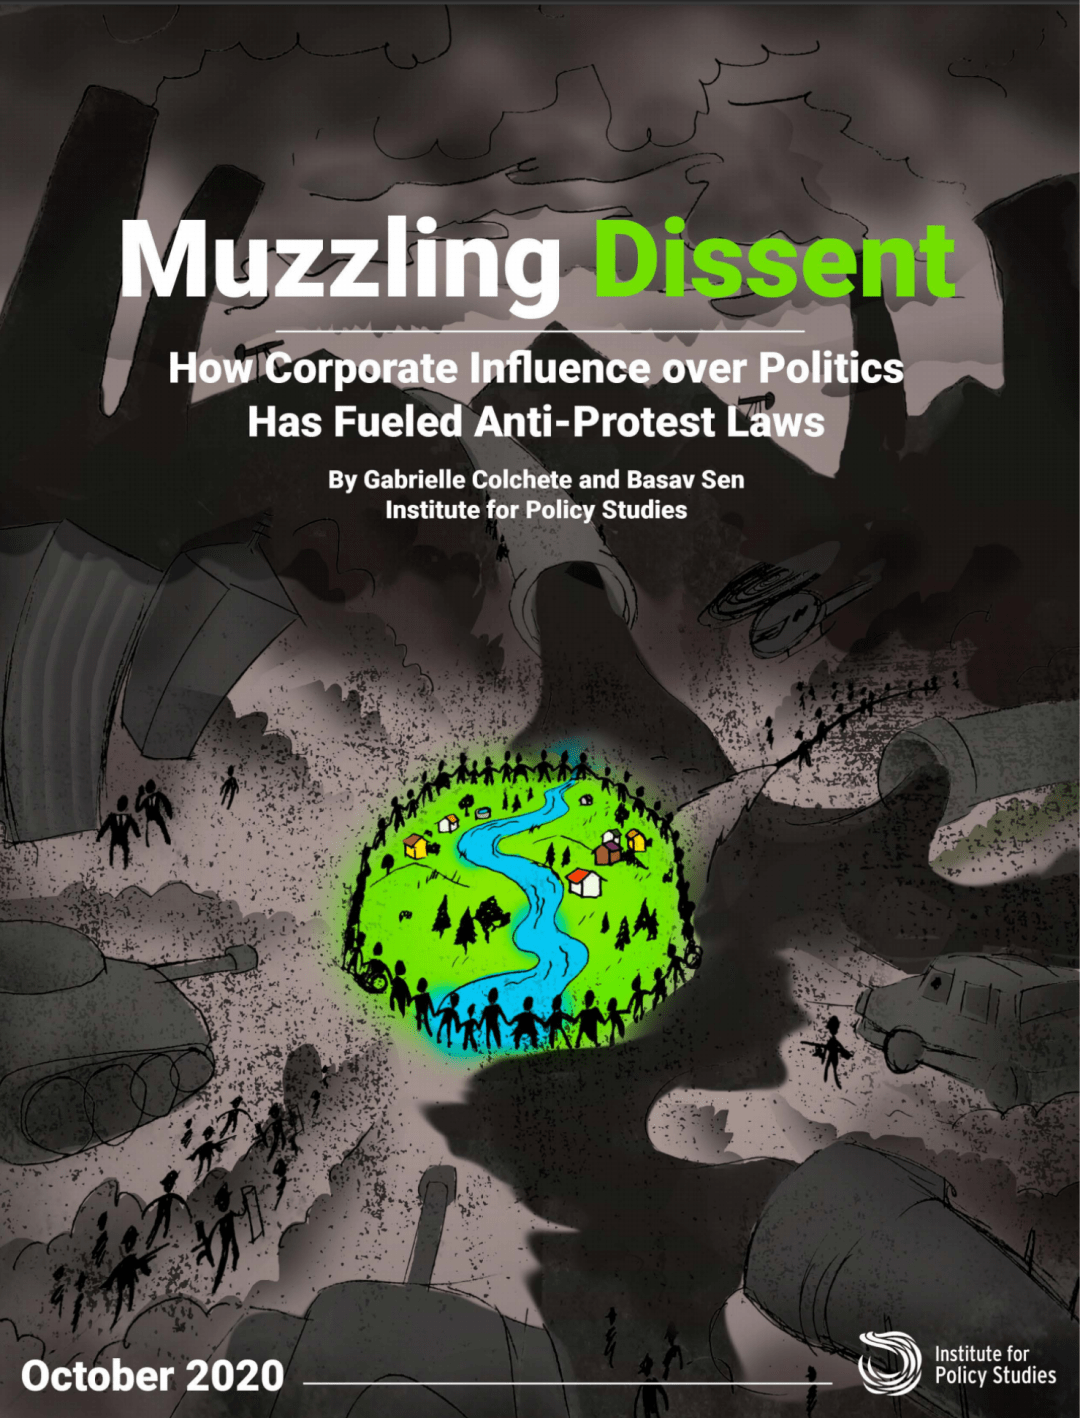 Muzzling Dissent - Anti-Protest report cover image